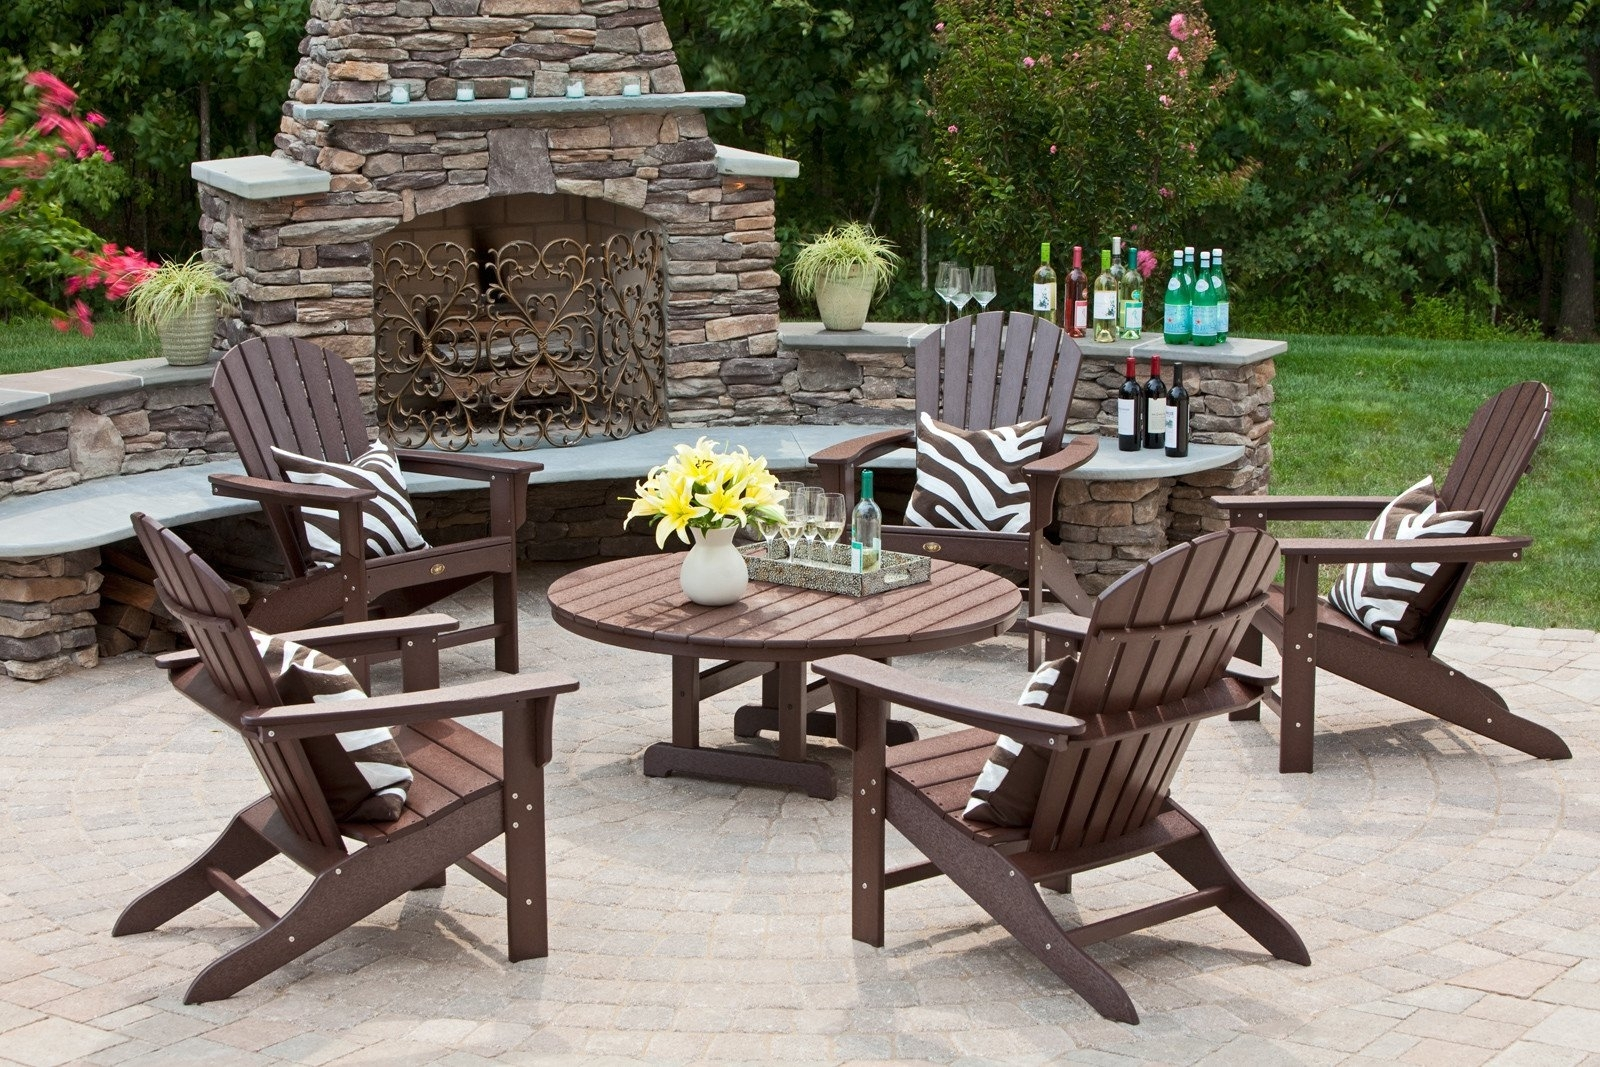 Widely Used Conversation Sets Hampton Bay Patio Chat Set Wood Patio Furniture Regarding Wood Patio Furniture Conversation Sets (View 7 of 20)